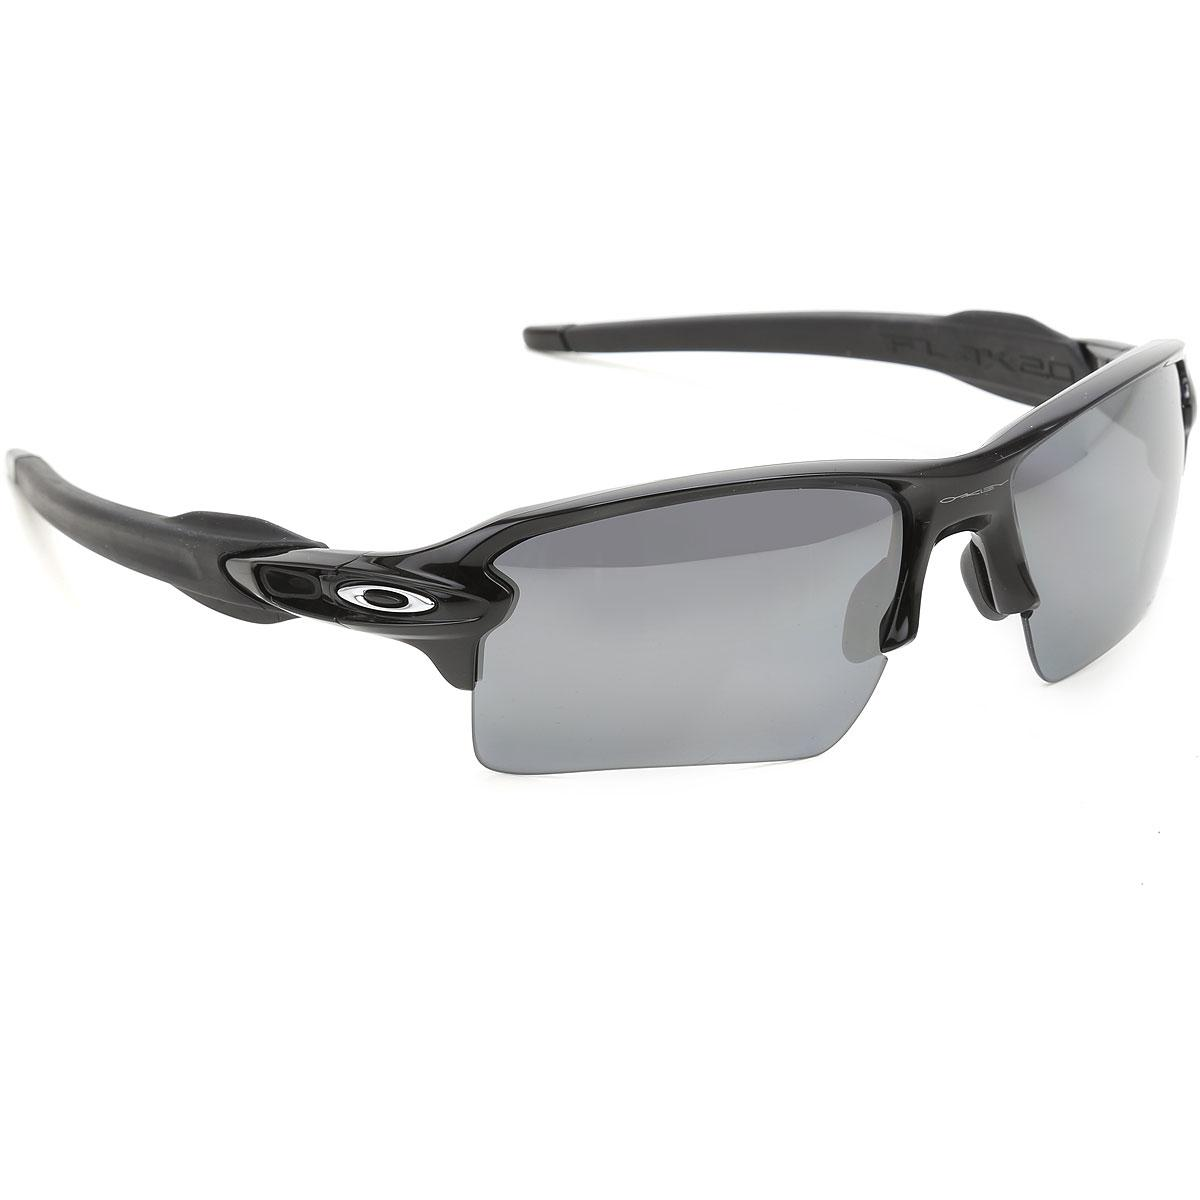 58b9288907 Oakley Predator Sunglasses « One More Soul